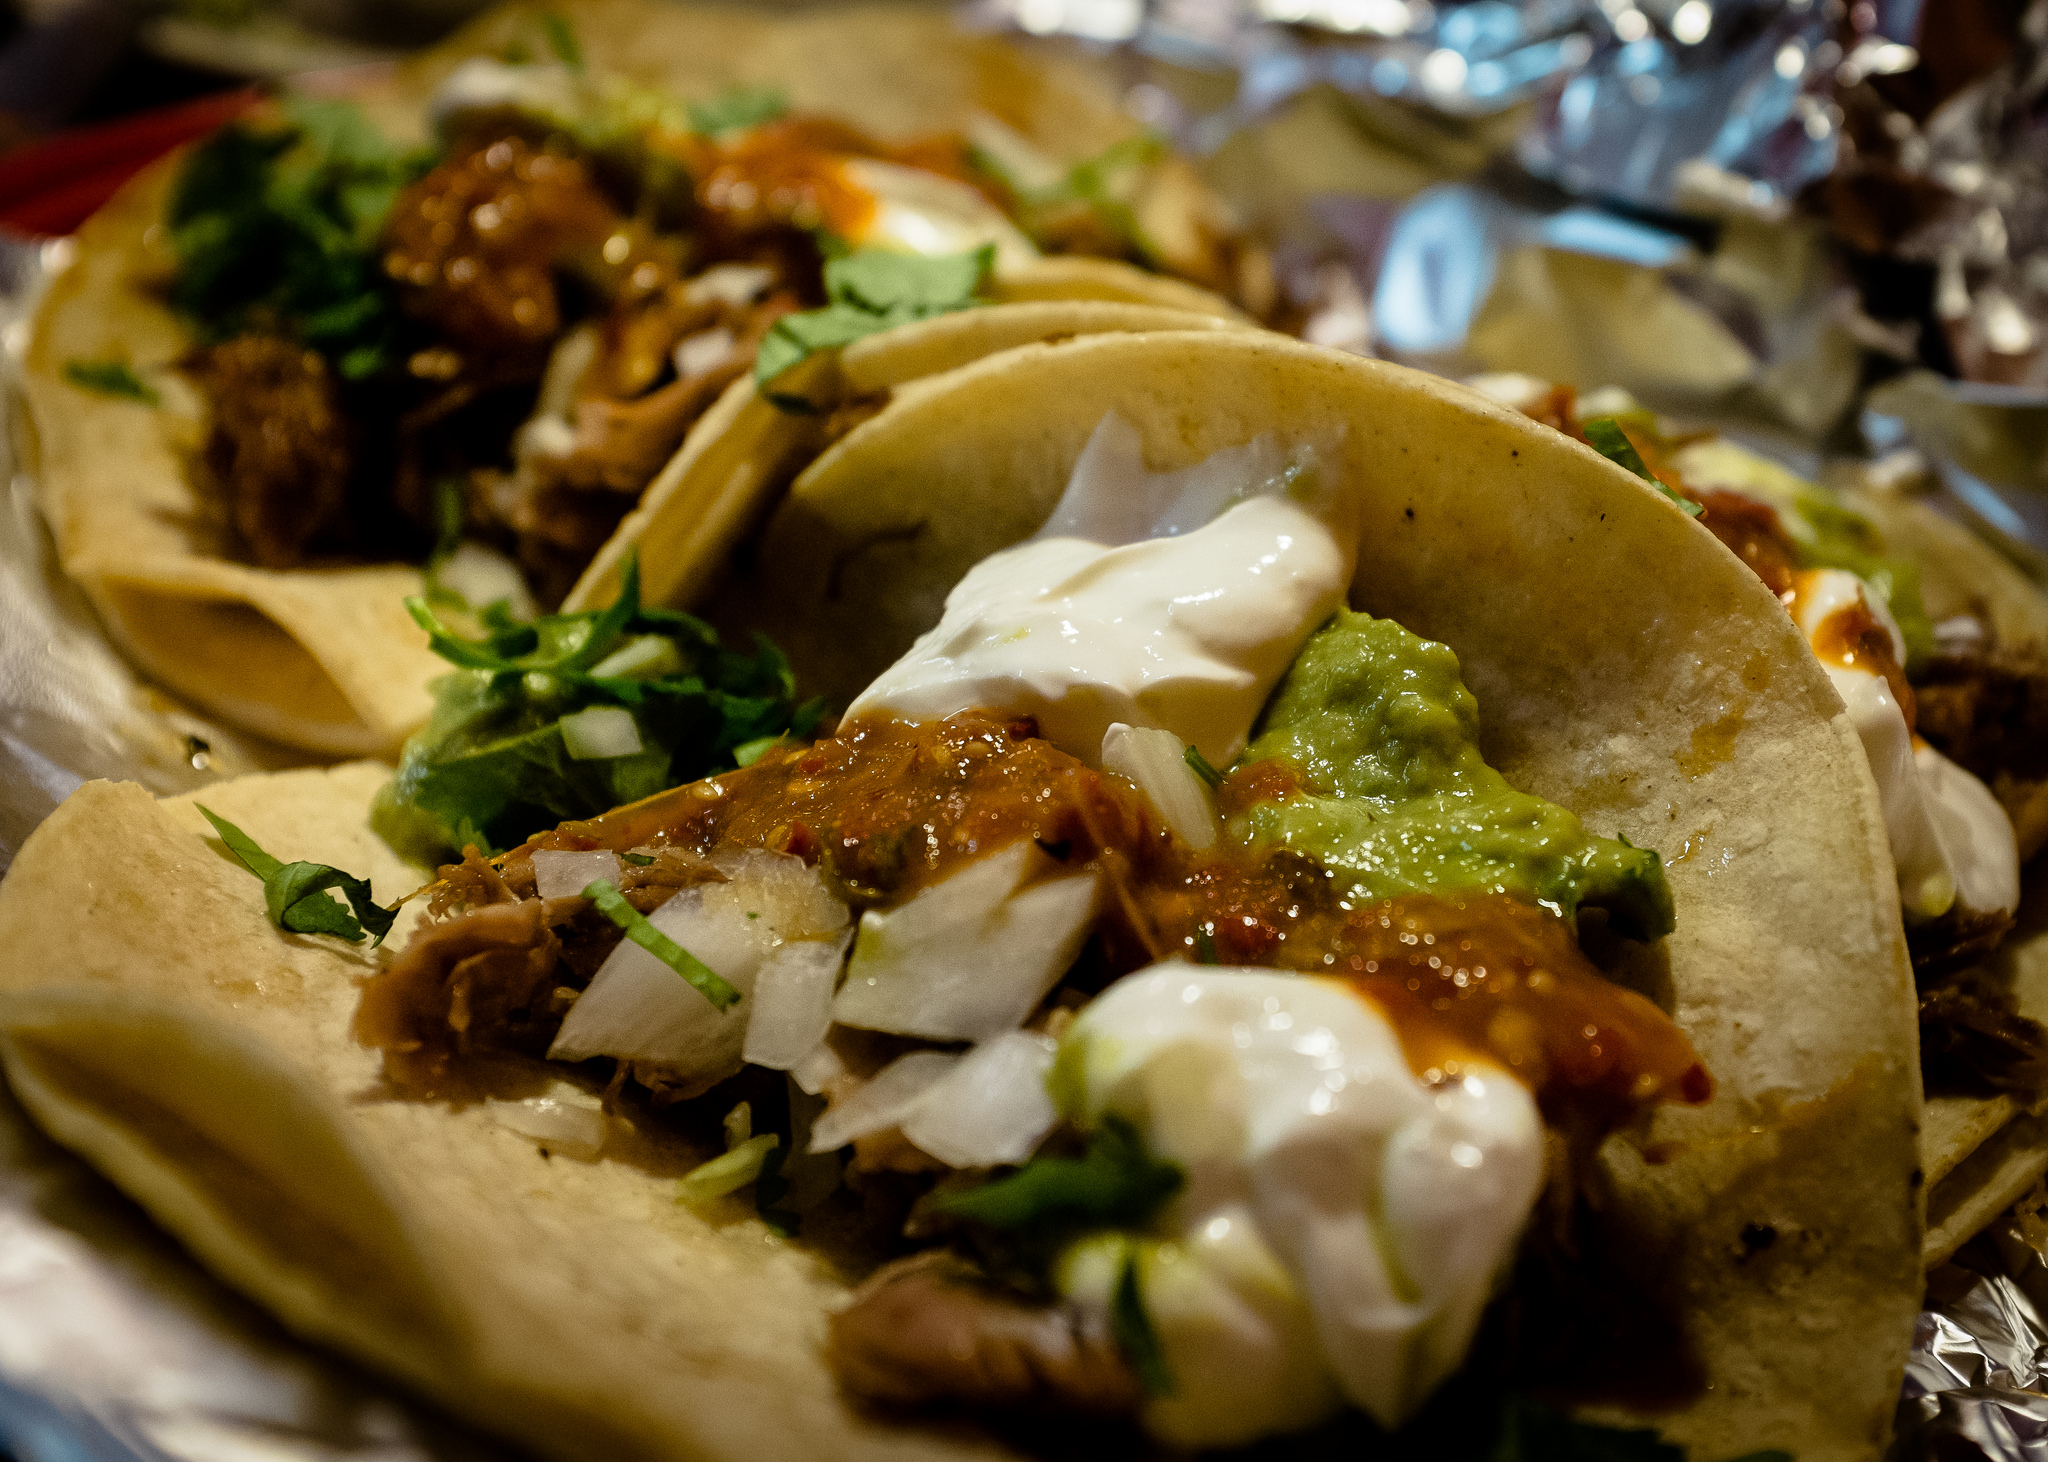 Tacos de carnitas | © rpavich/Flickr